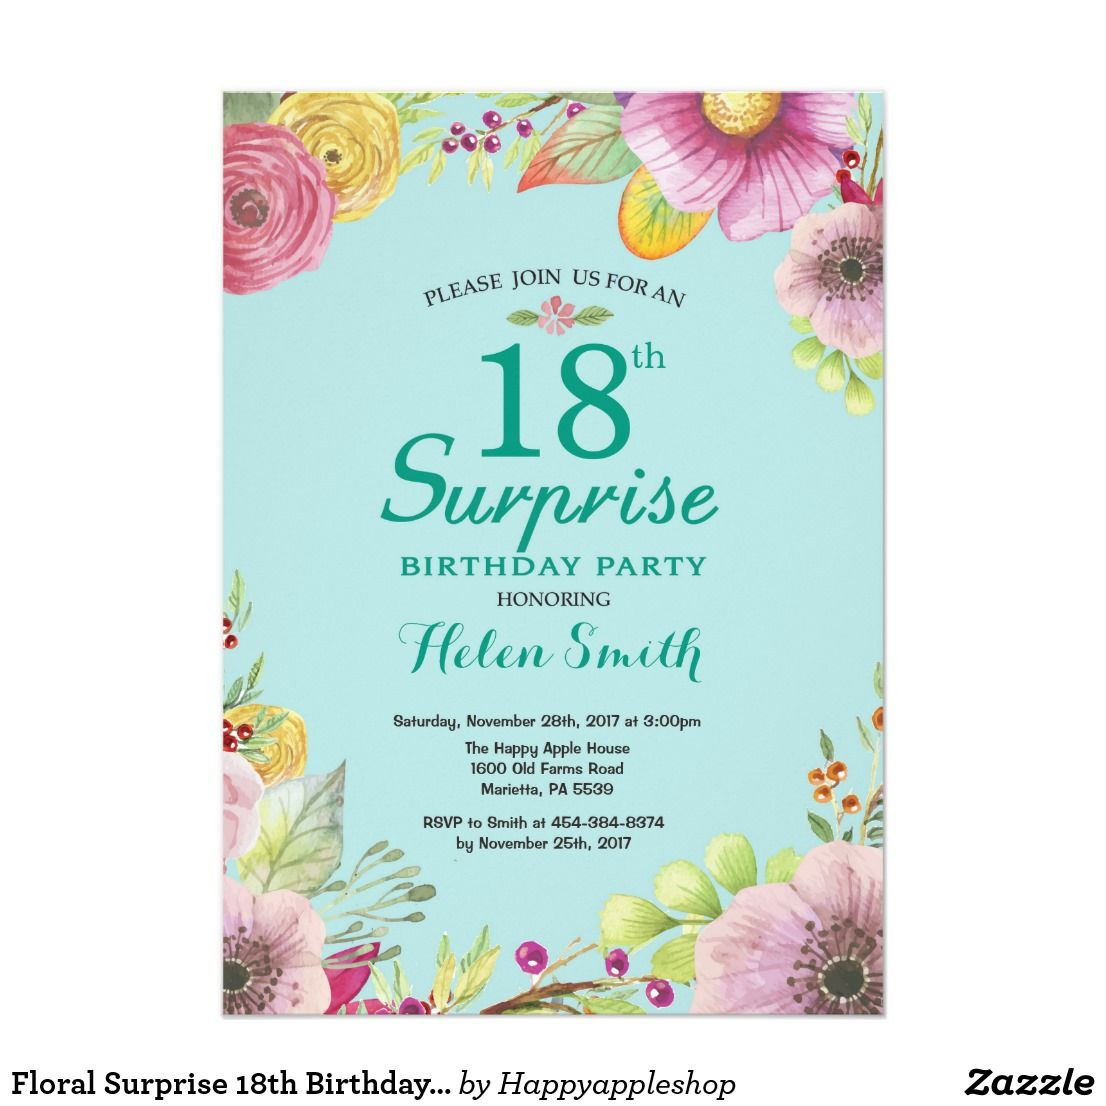 Floral Surprise 18th Birthday Invitation Teal For Women Watercolor Aqua Turquoise Background